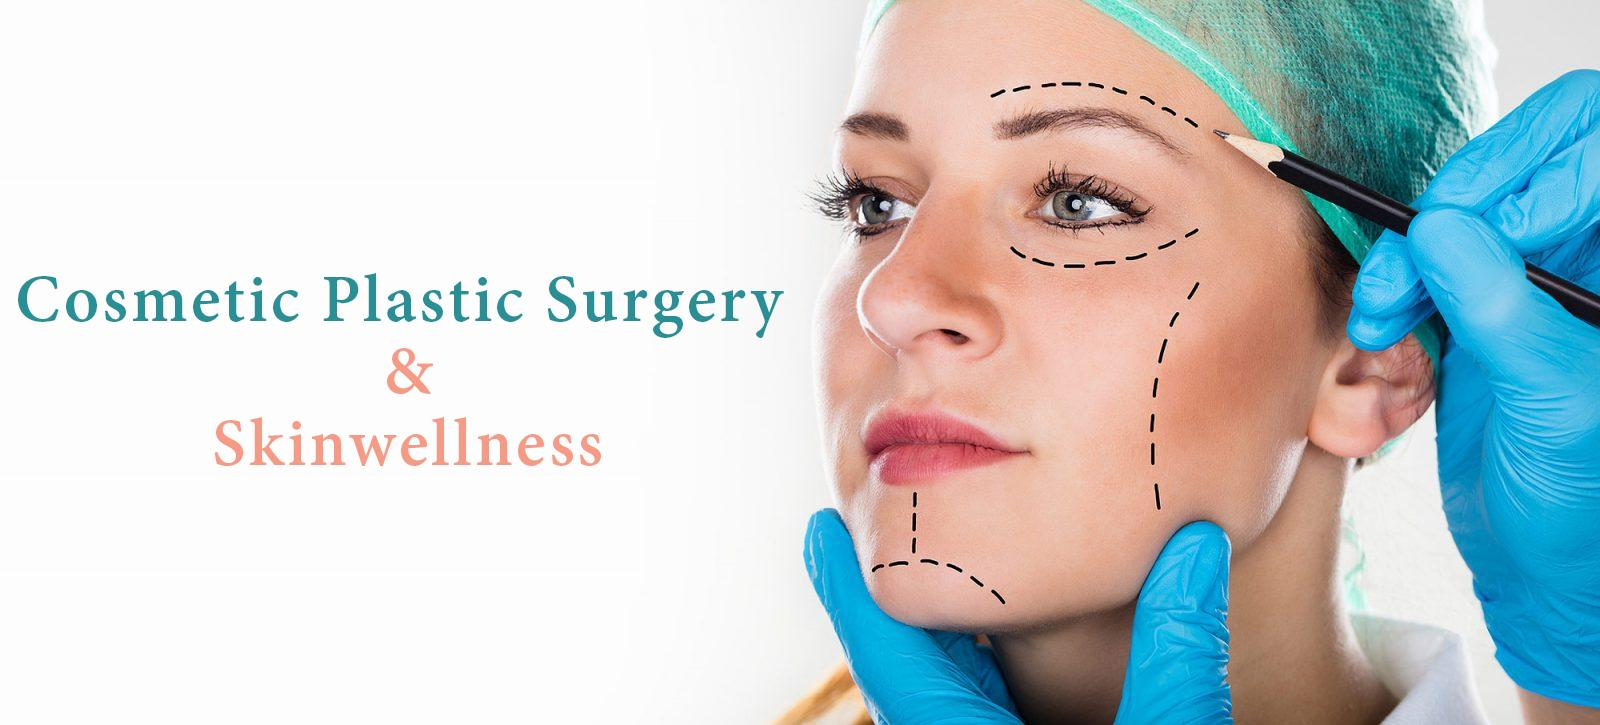 cosmetic-surgery banner with text